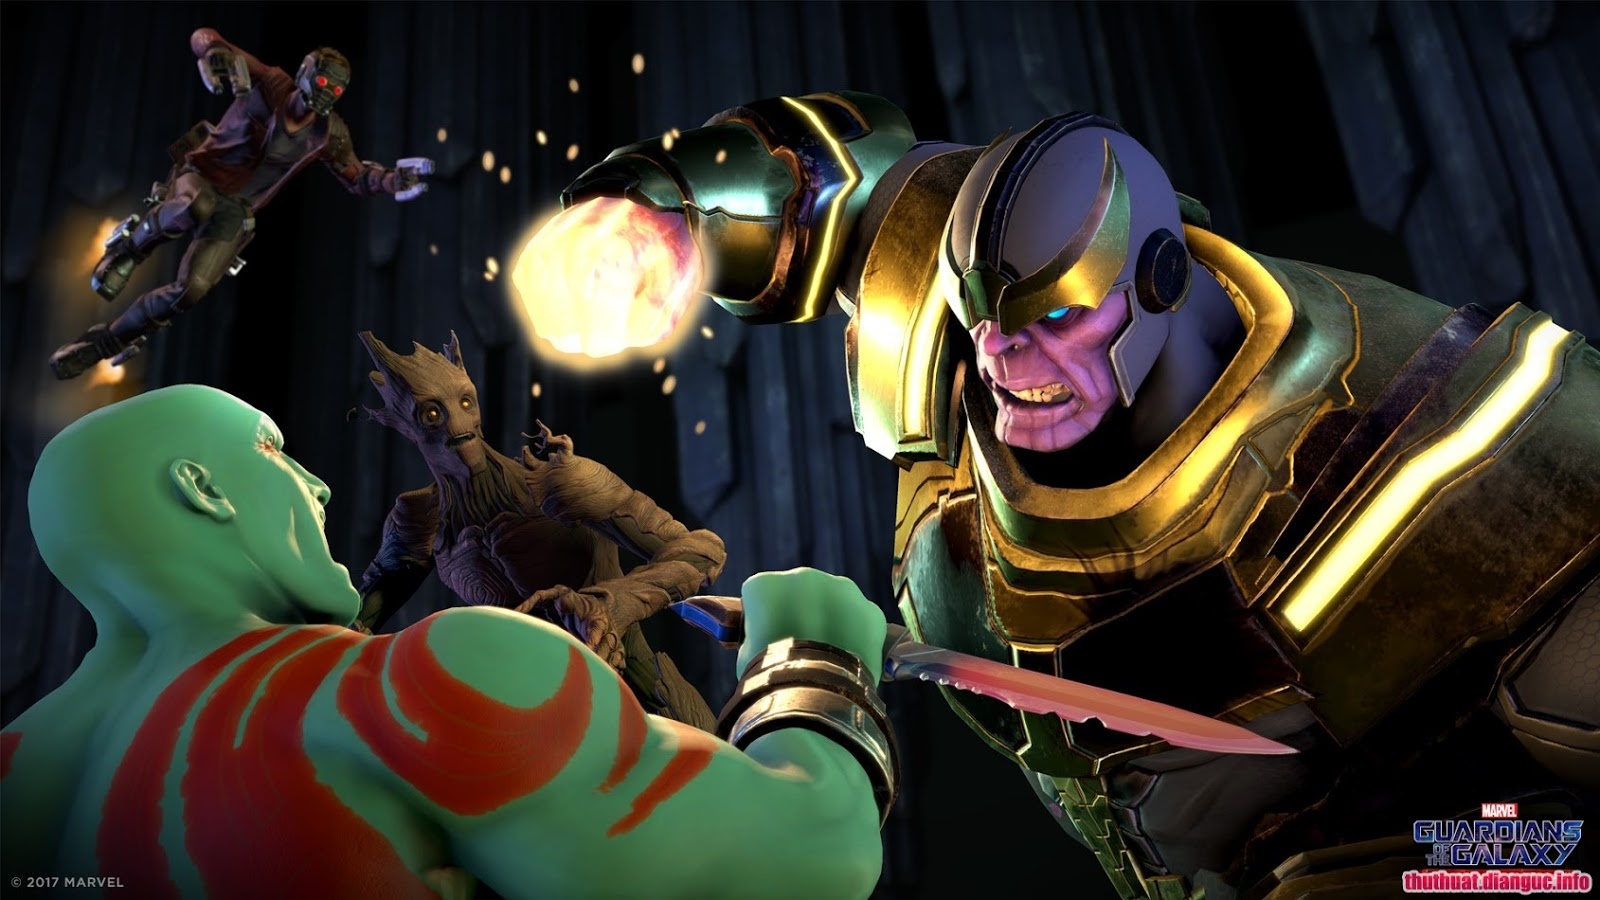 Download Game Marvels Guardians of the Galaxy Episode 1 Full Cr@ck